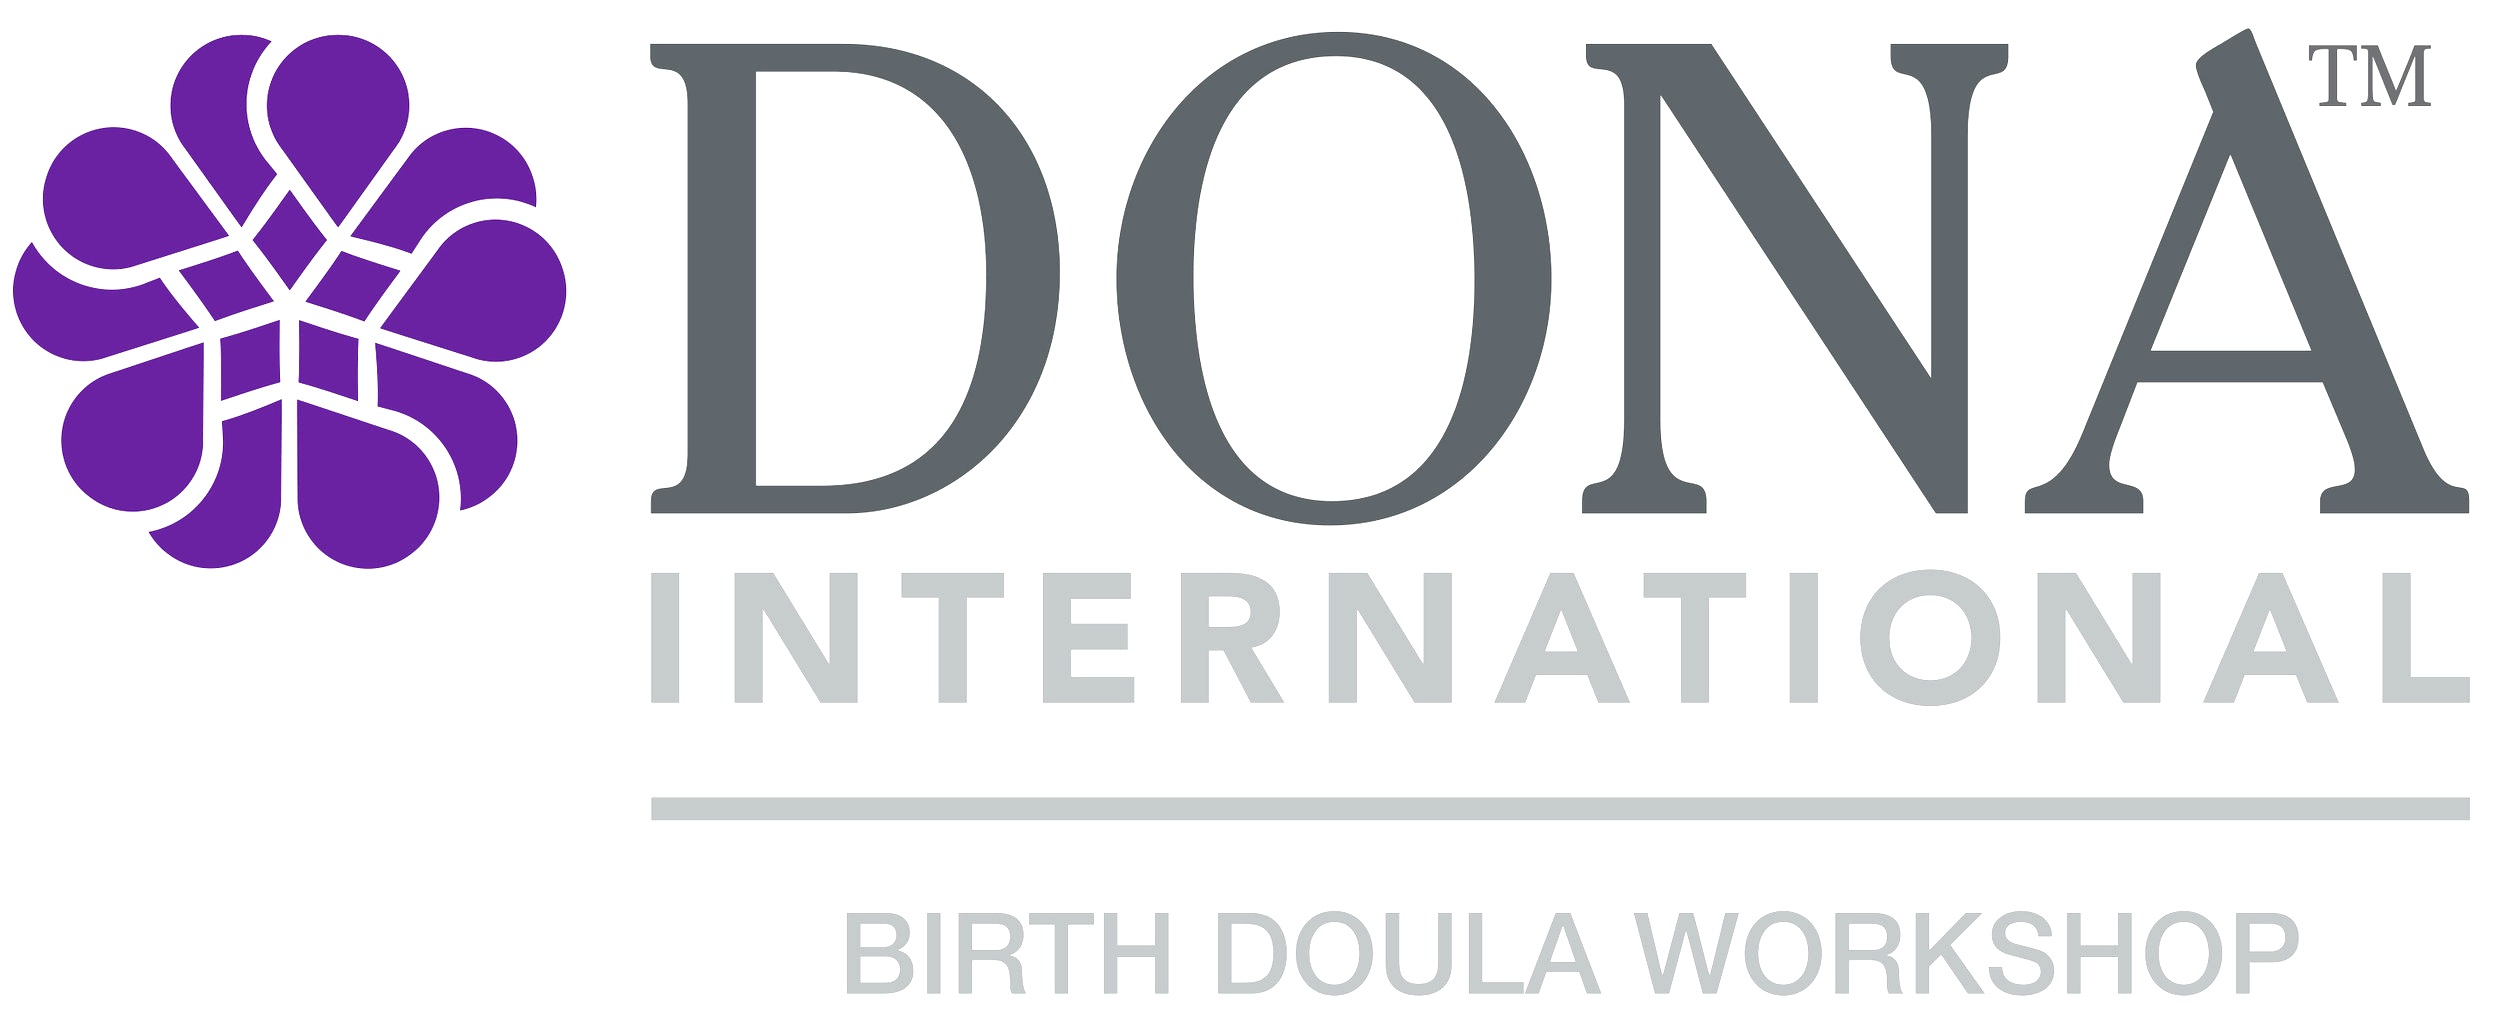 Join the ranks of the most respected and accepted birth doulas in the world. Become a DONA certified birth doula. -